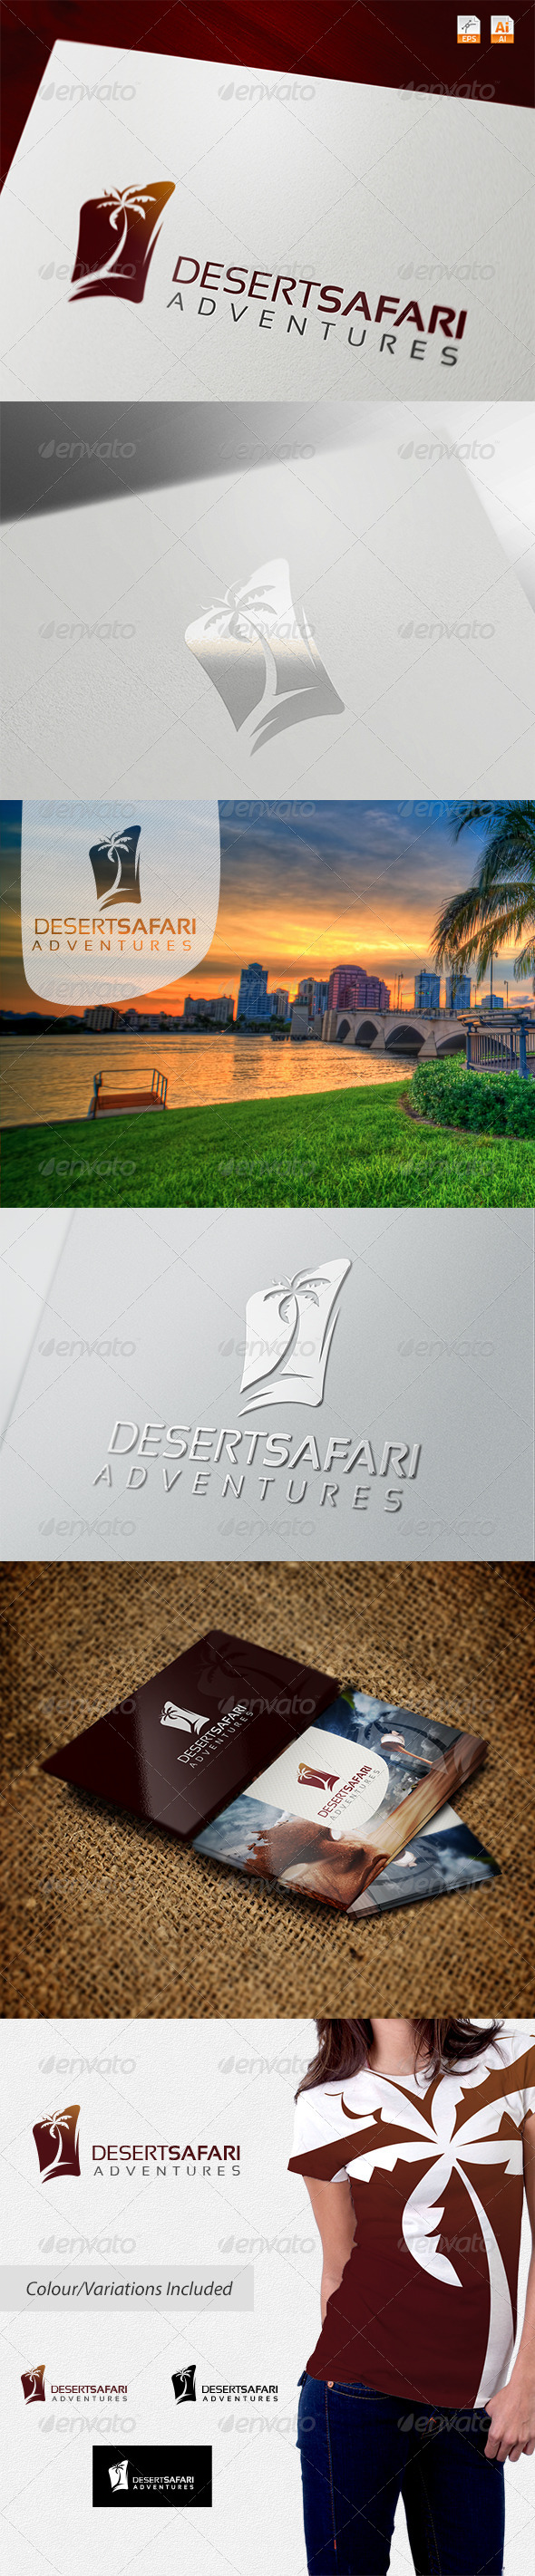 GraphicRiver Desert Safari Adventures 5286398